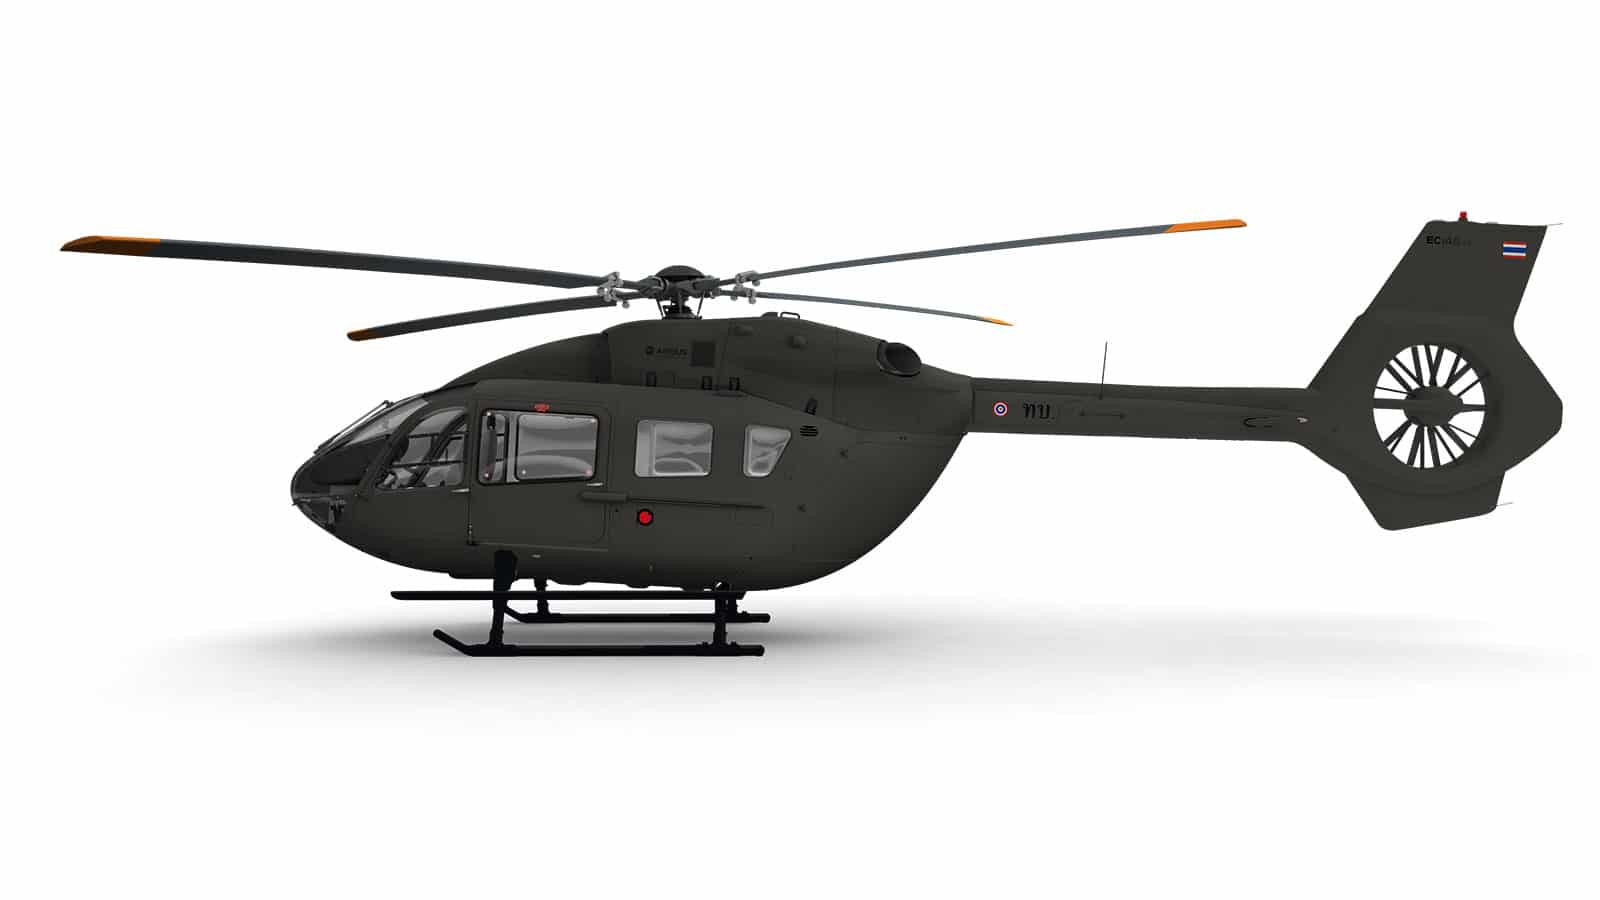 The Royal Thai Army acquires six Airbus EC145 T2 Helicopters